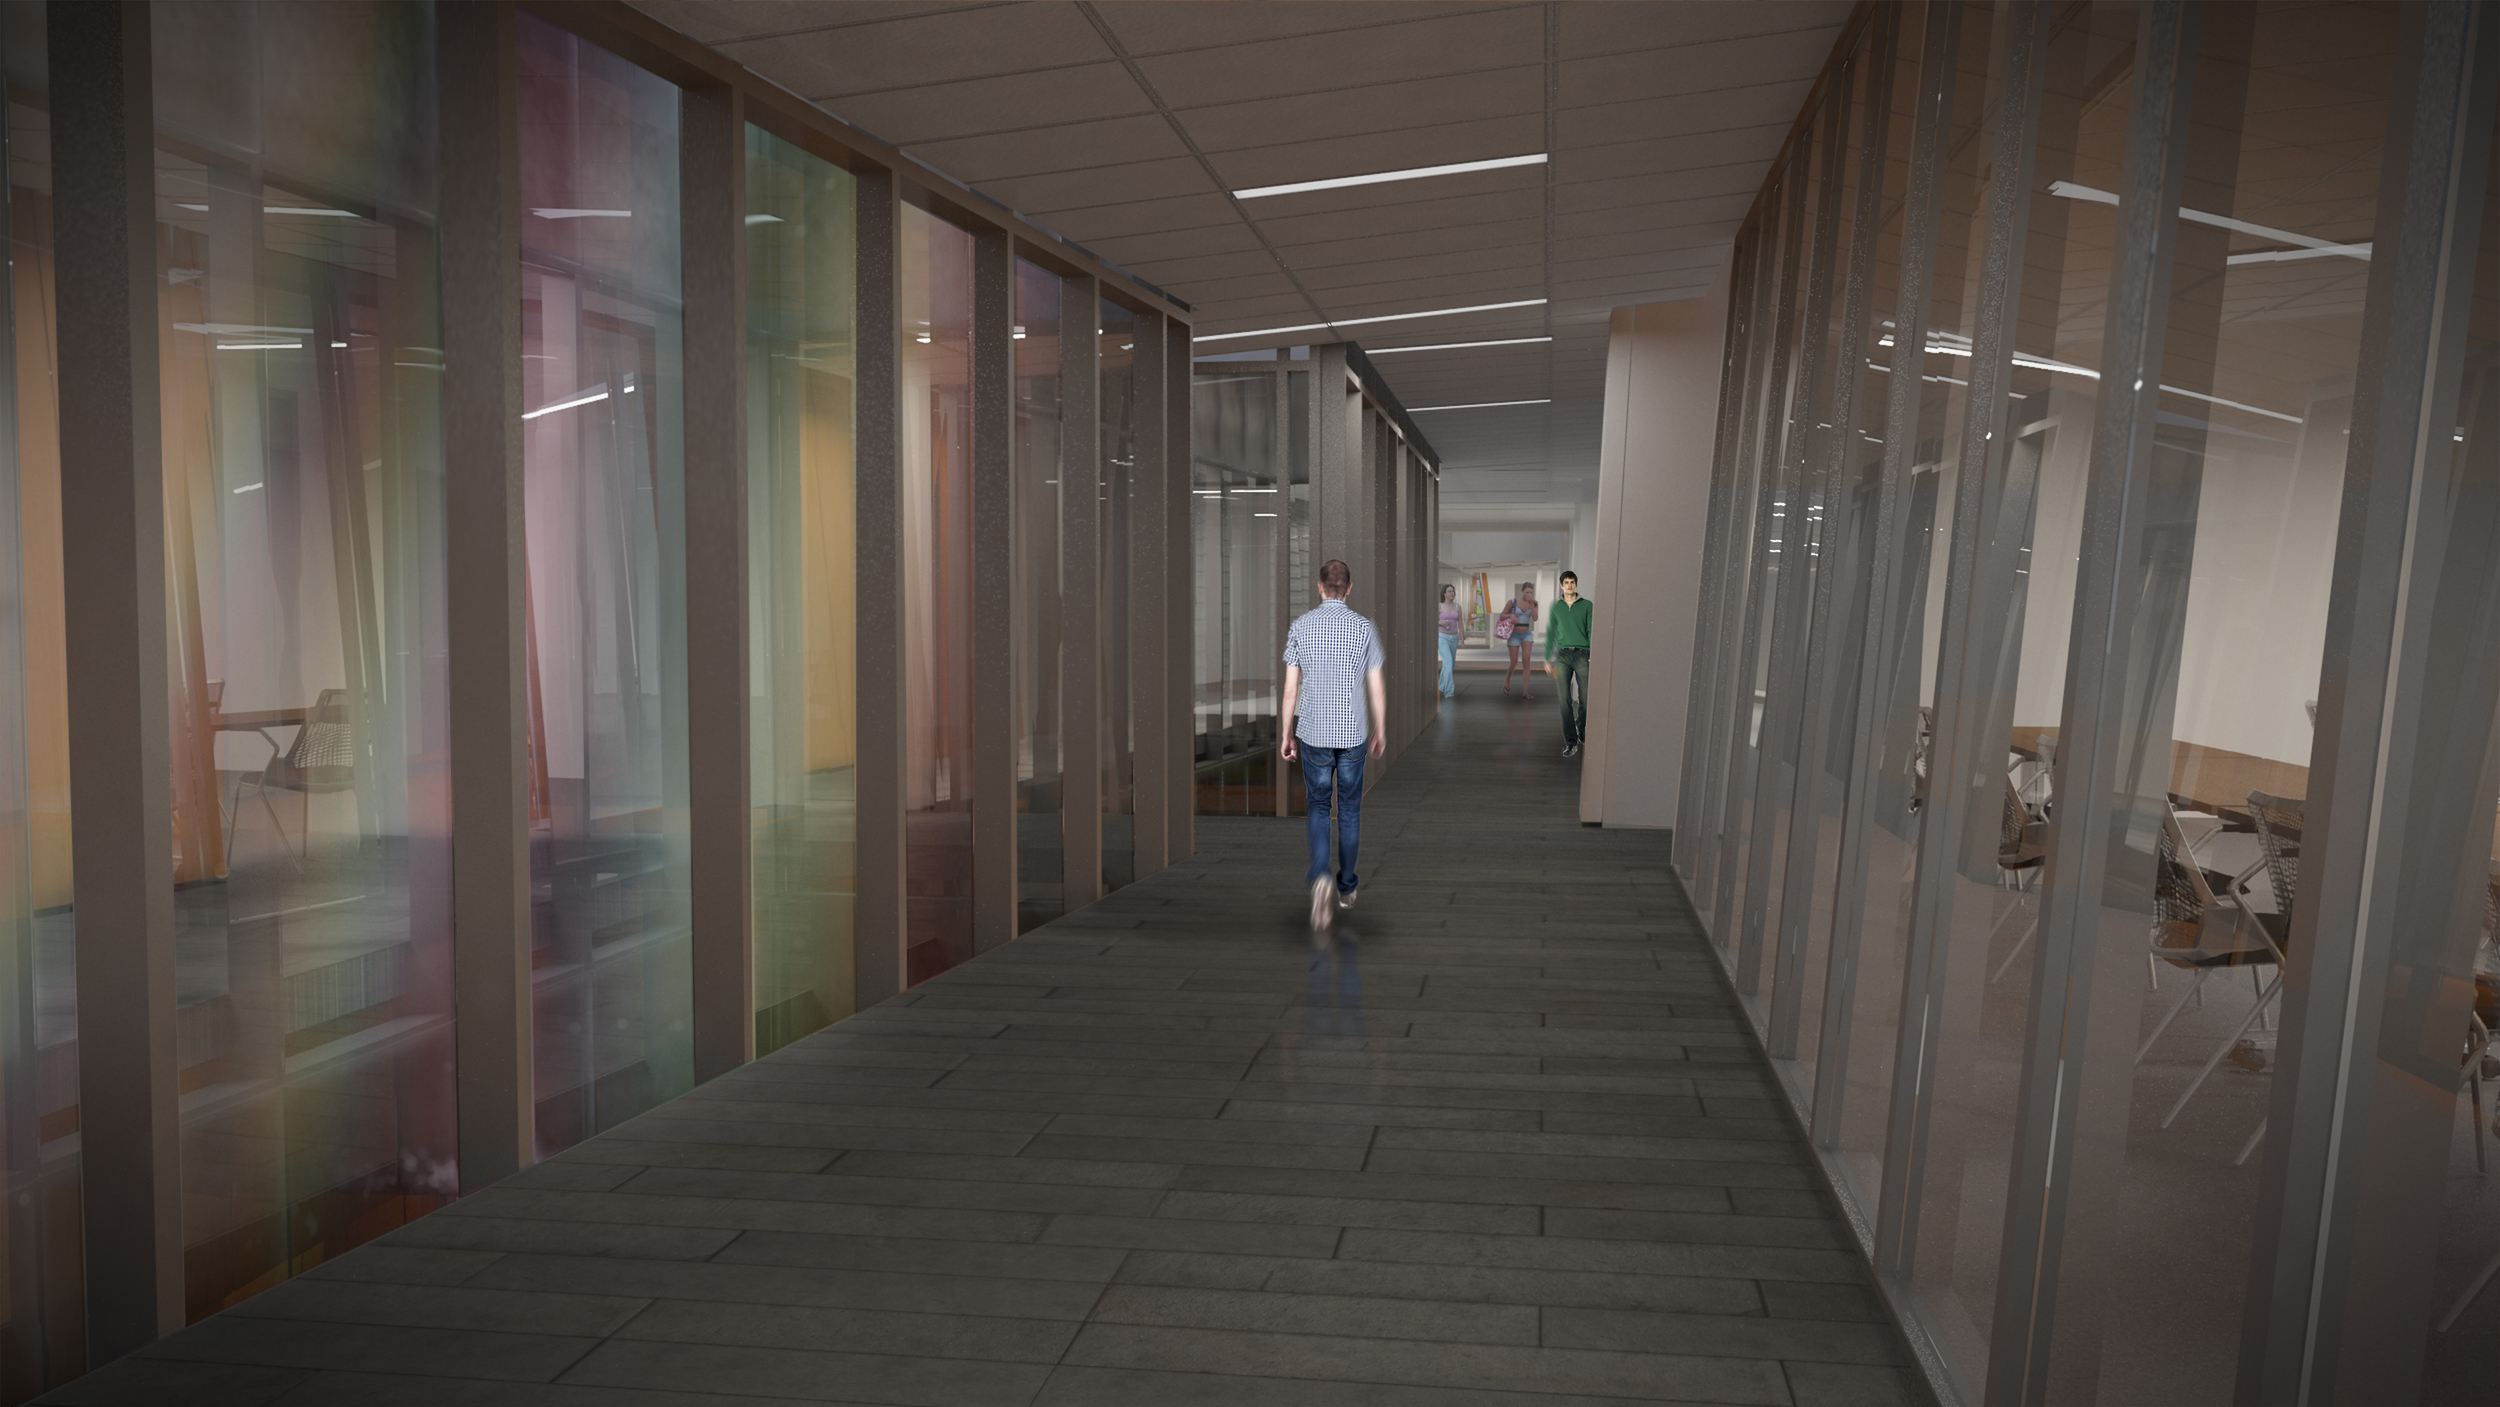 Evergreen Valley College Rendering 5